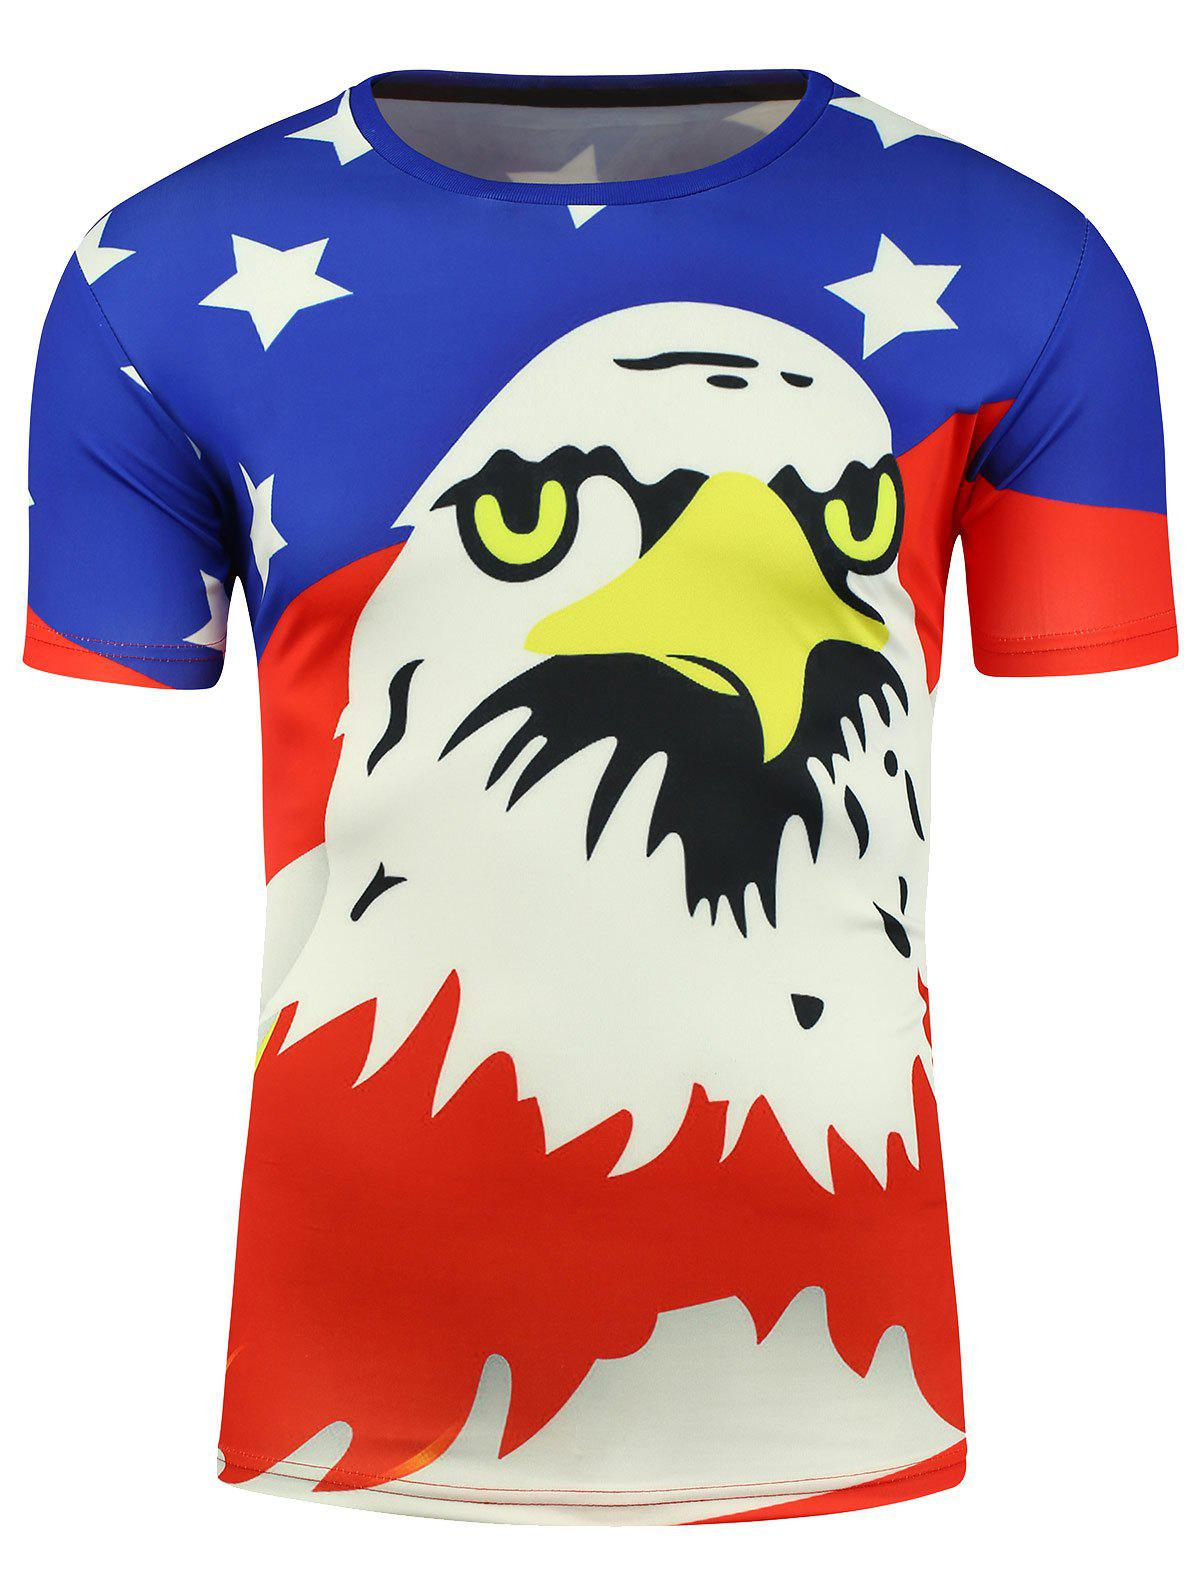 Short Sleeve Cartoon Eagle and American Flag Print T-shirt - COLORMIX XL